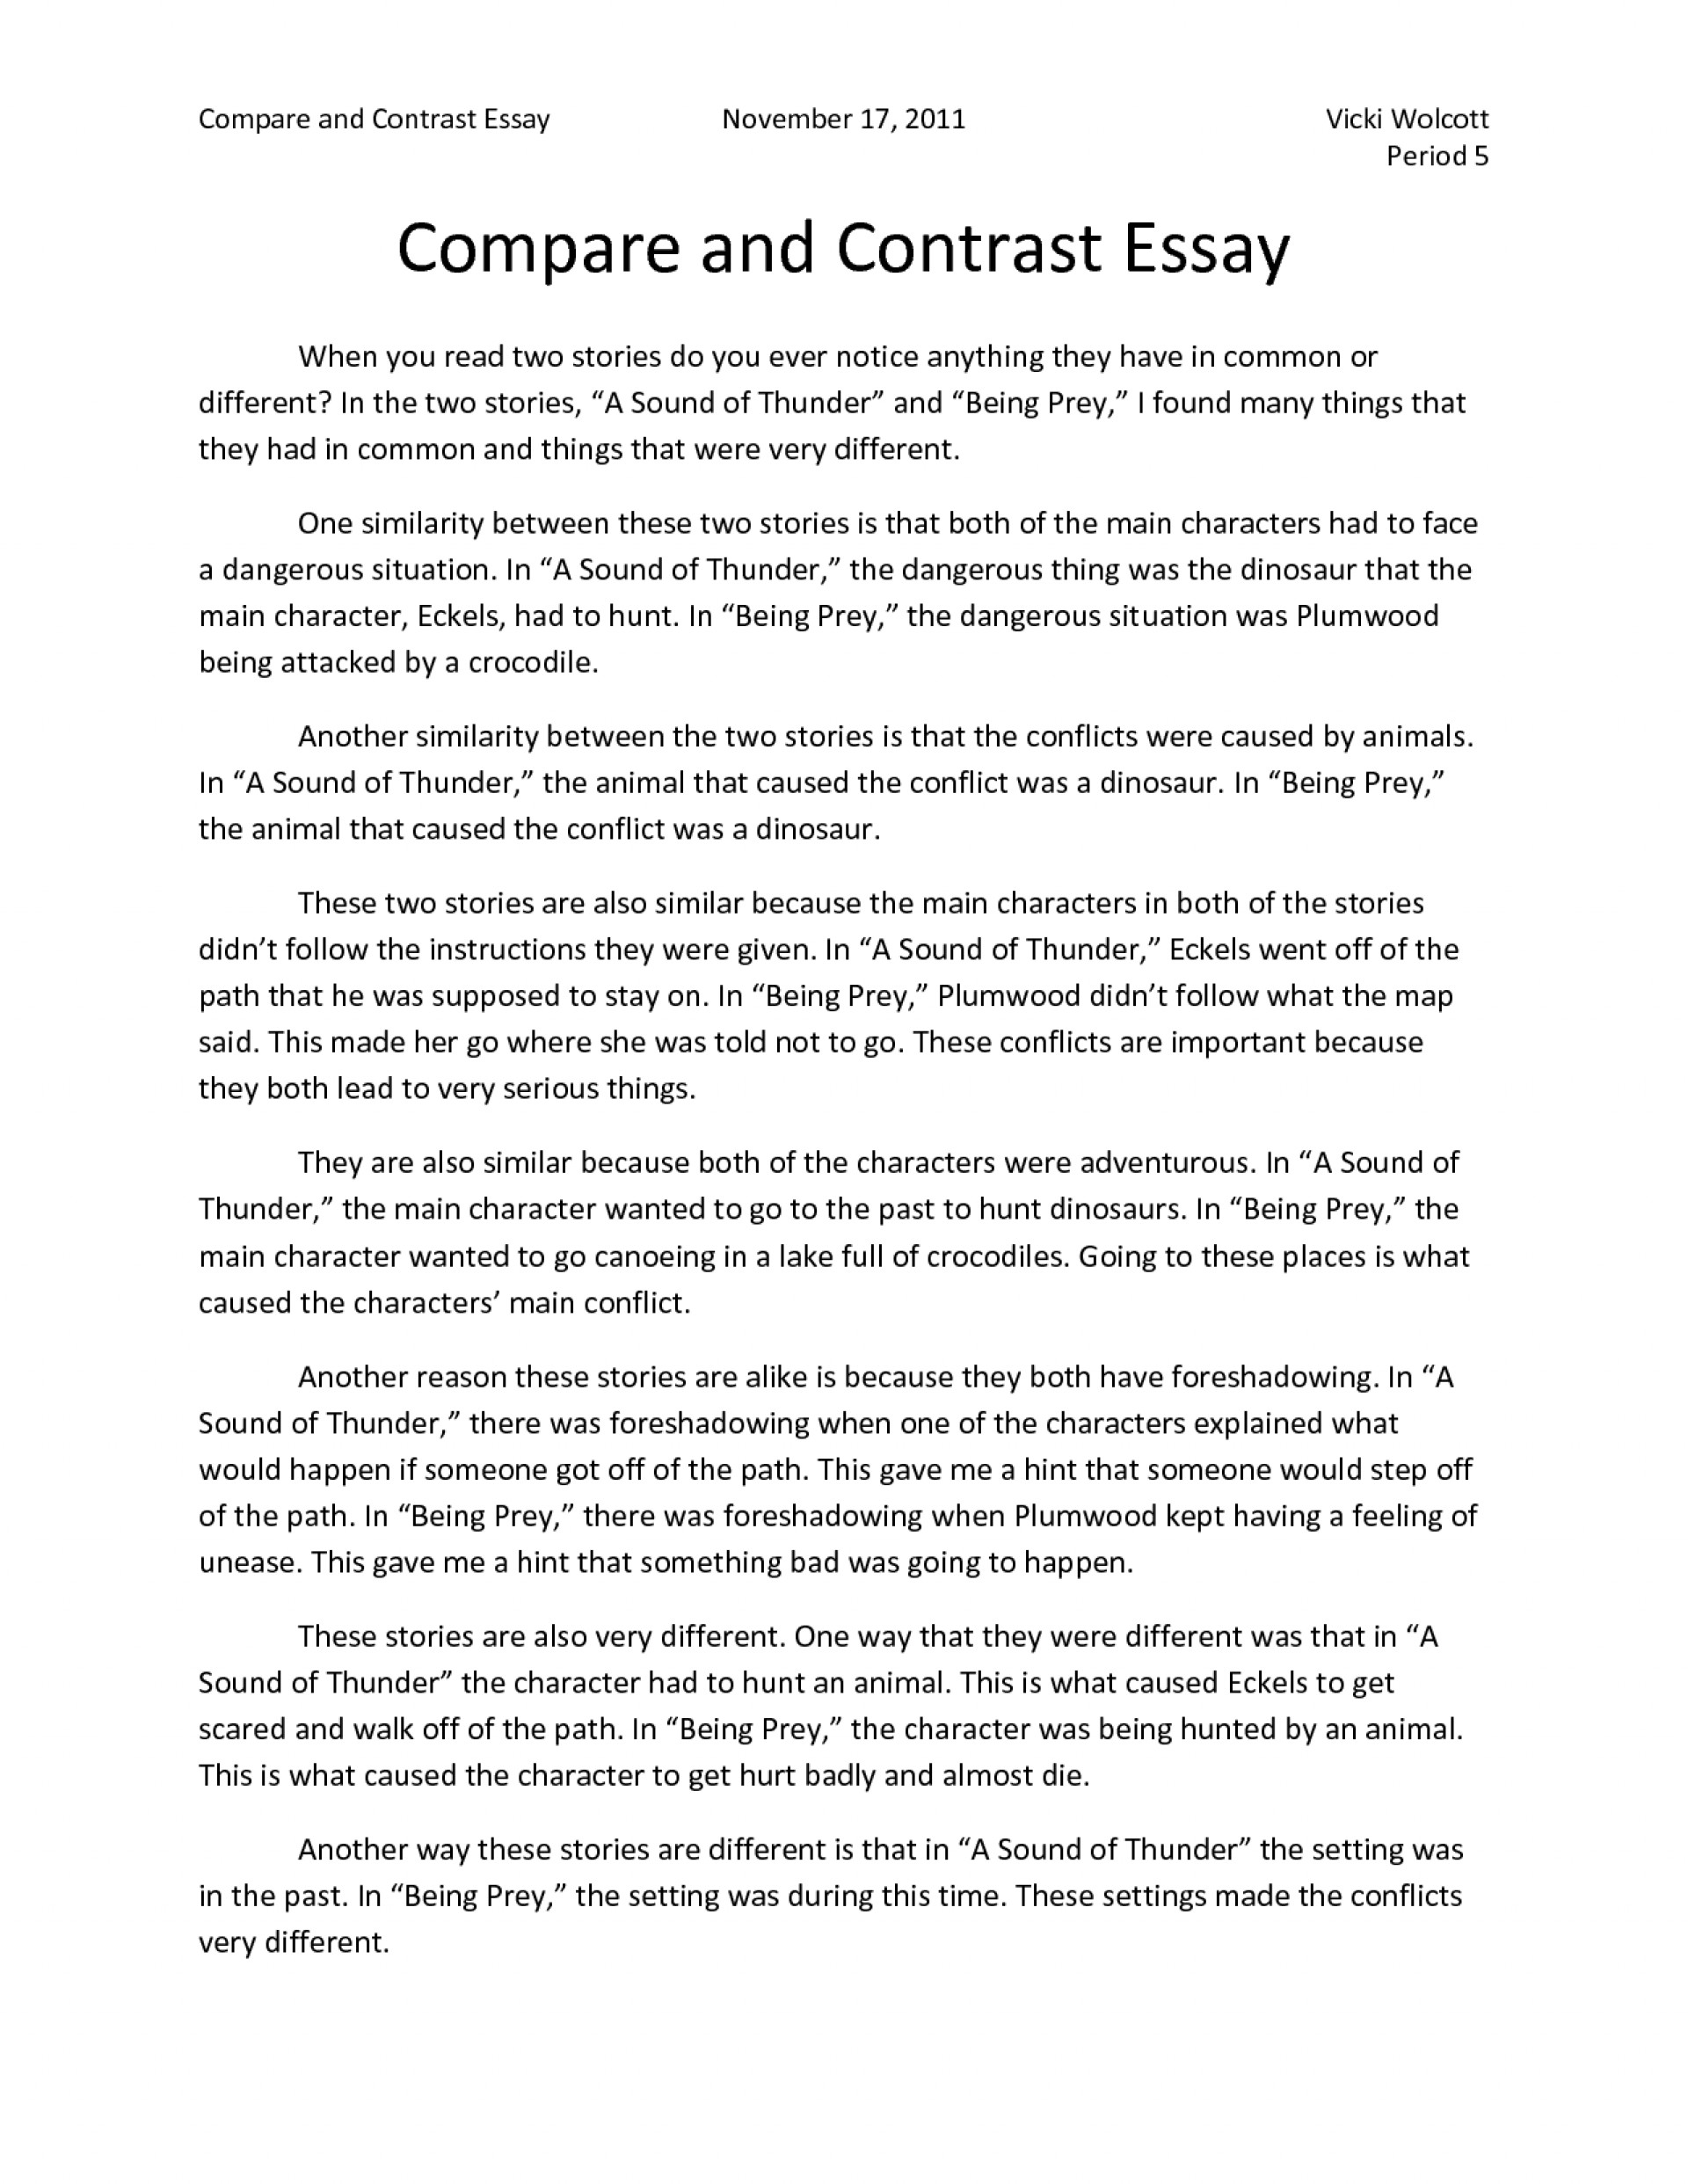 004 Essay Example Compare And Contrast Gallery Template Drawing Art Throughout College Examples Introduction Question Scholarship Free Edexcel Conclusion Frightening Outline Block Method Ideas High School For Middle 1920